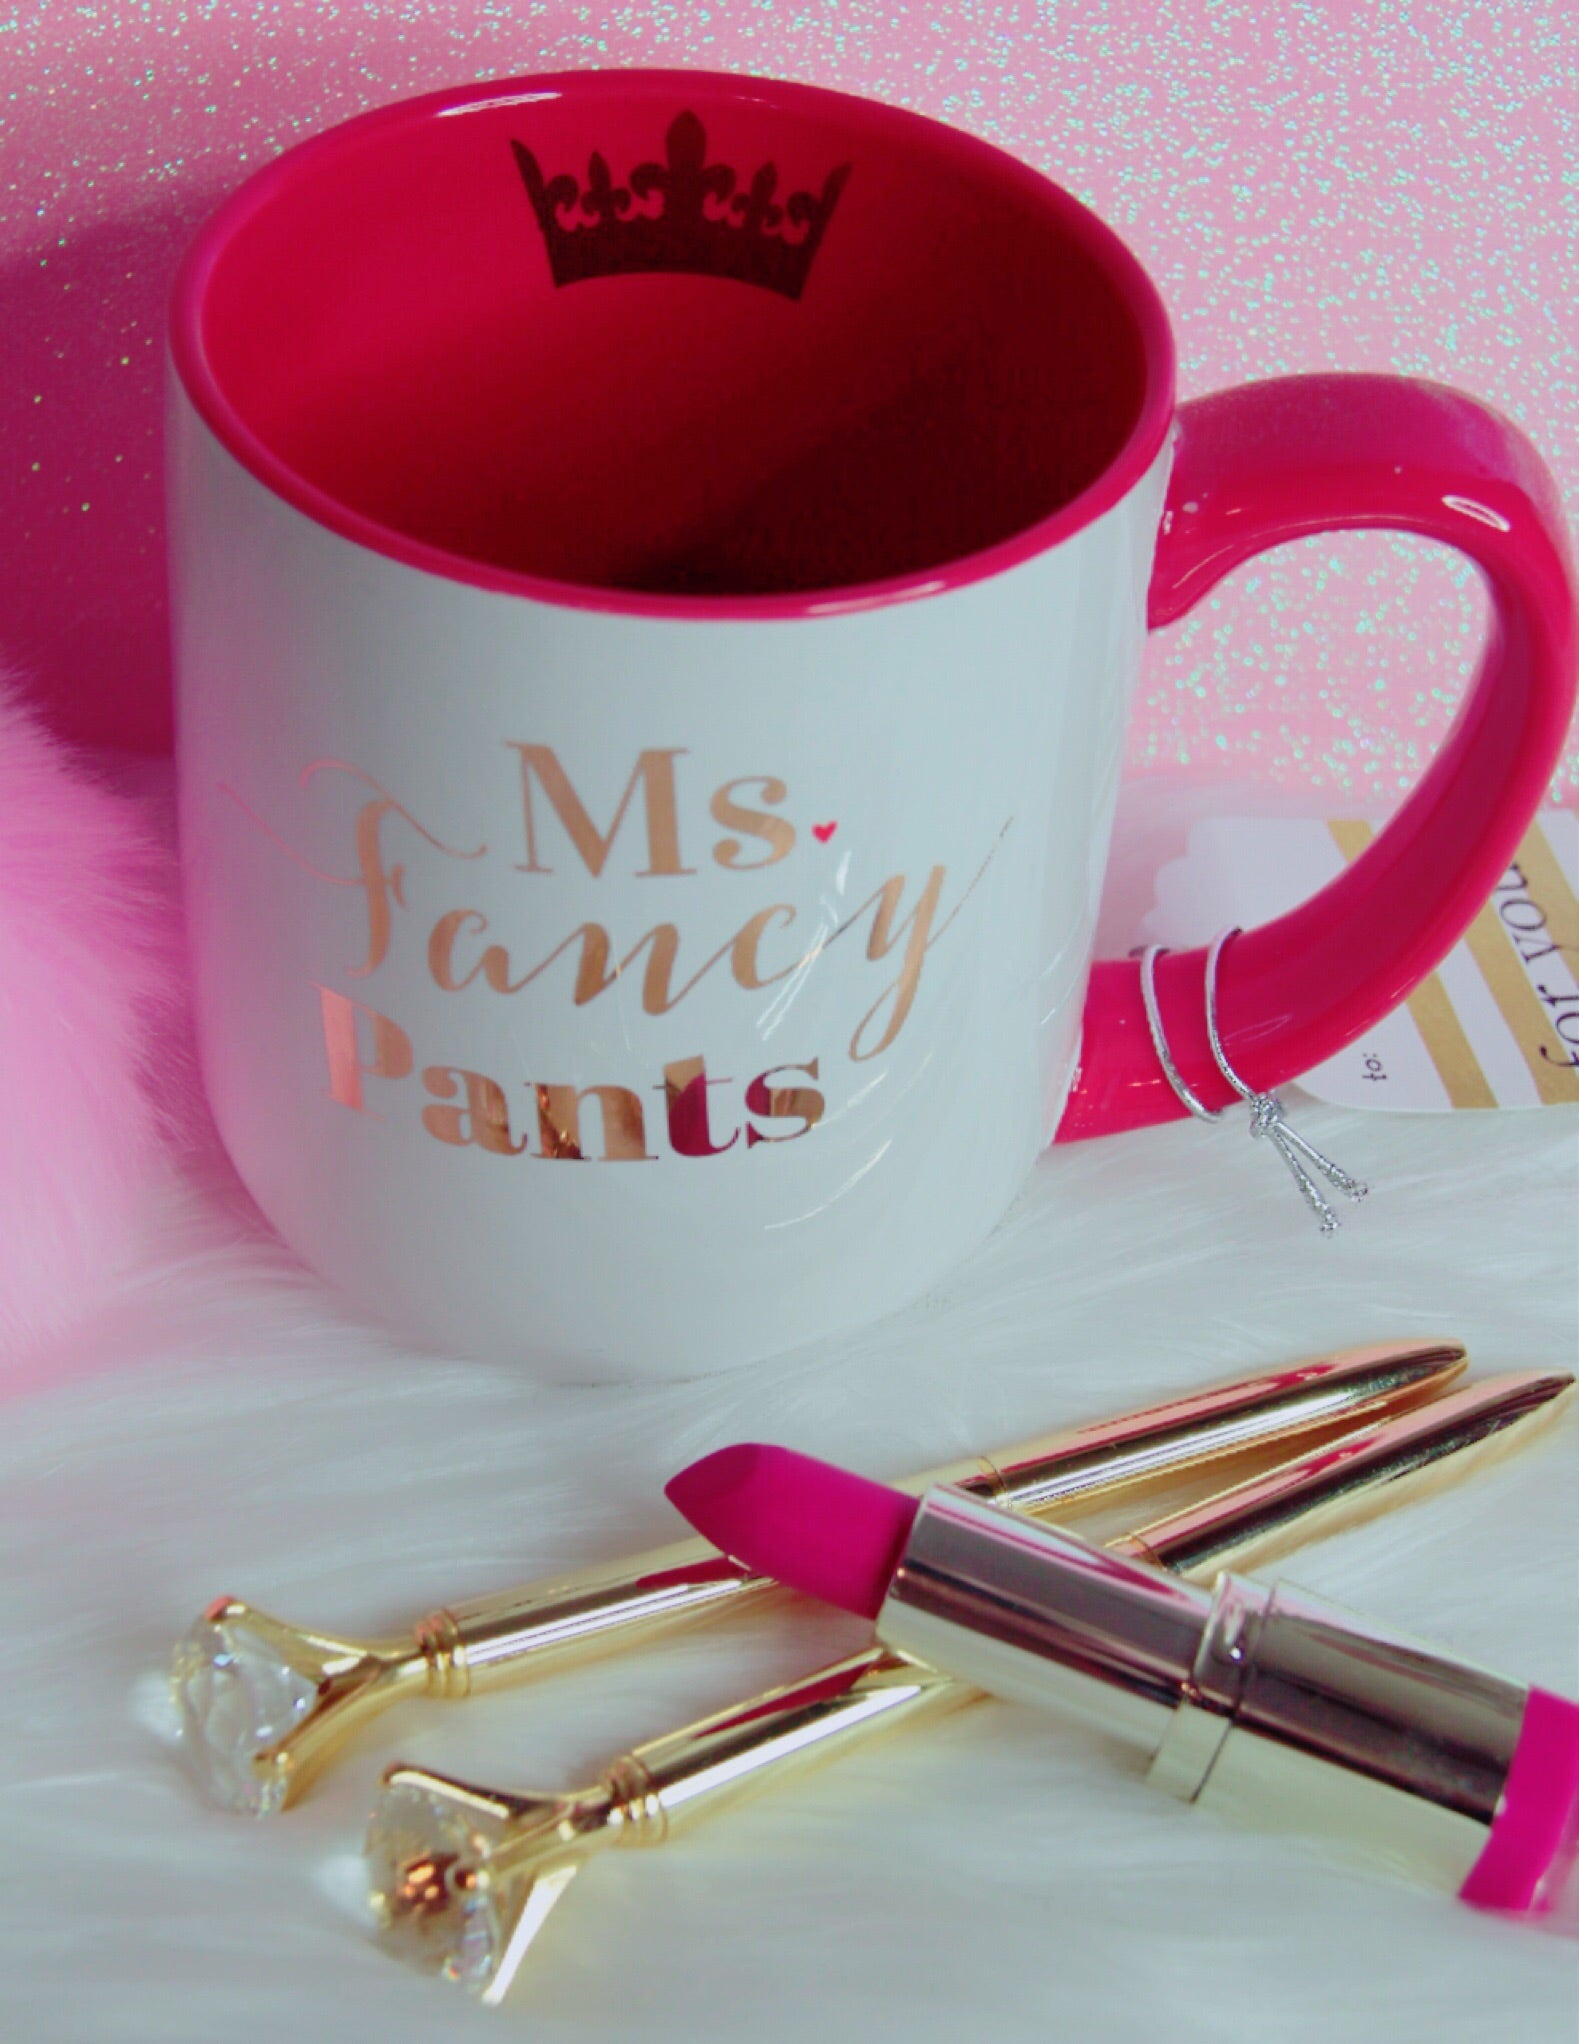 Ms. Fancy Pants mug - Classy Pink Boutique